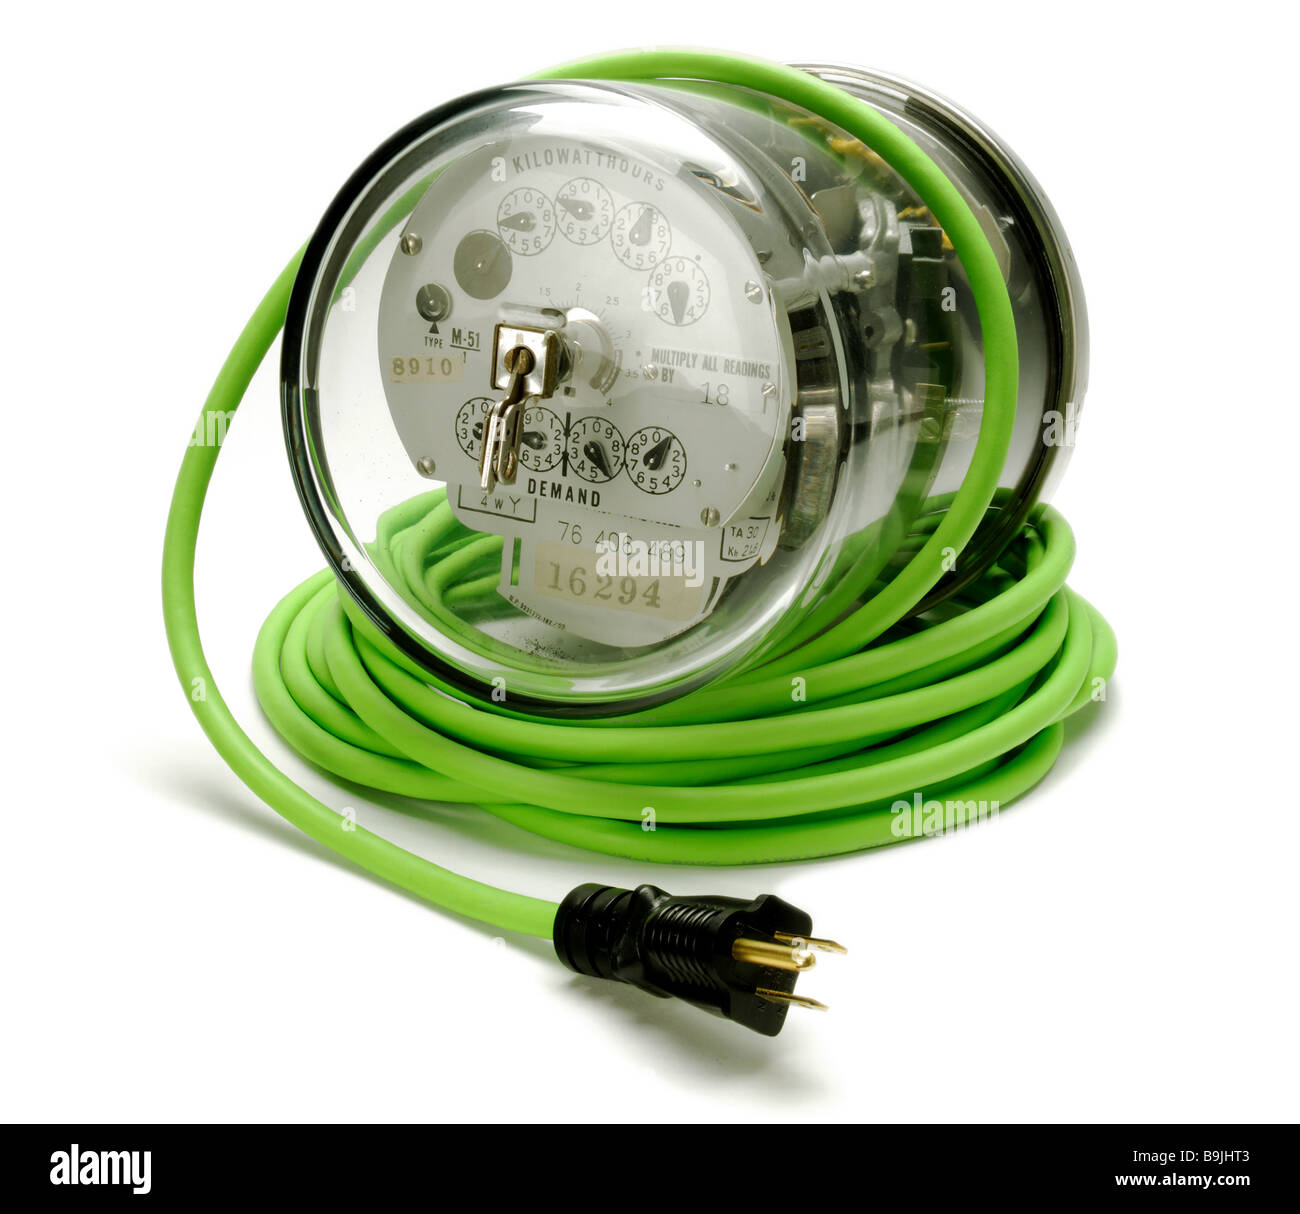 Electric power meter on a coiled green electrical extension cord and plug - Stock Image